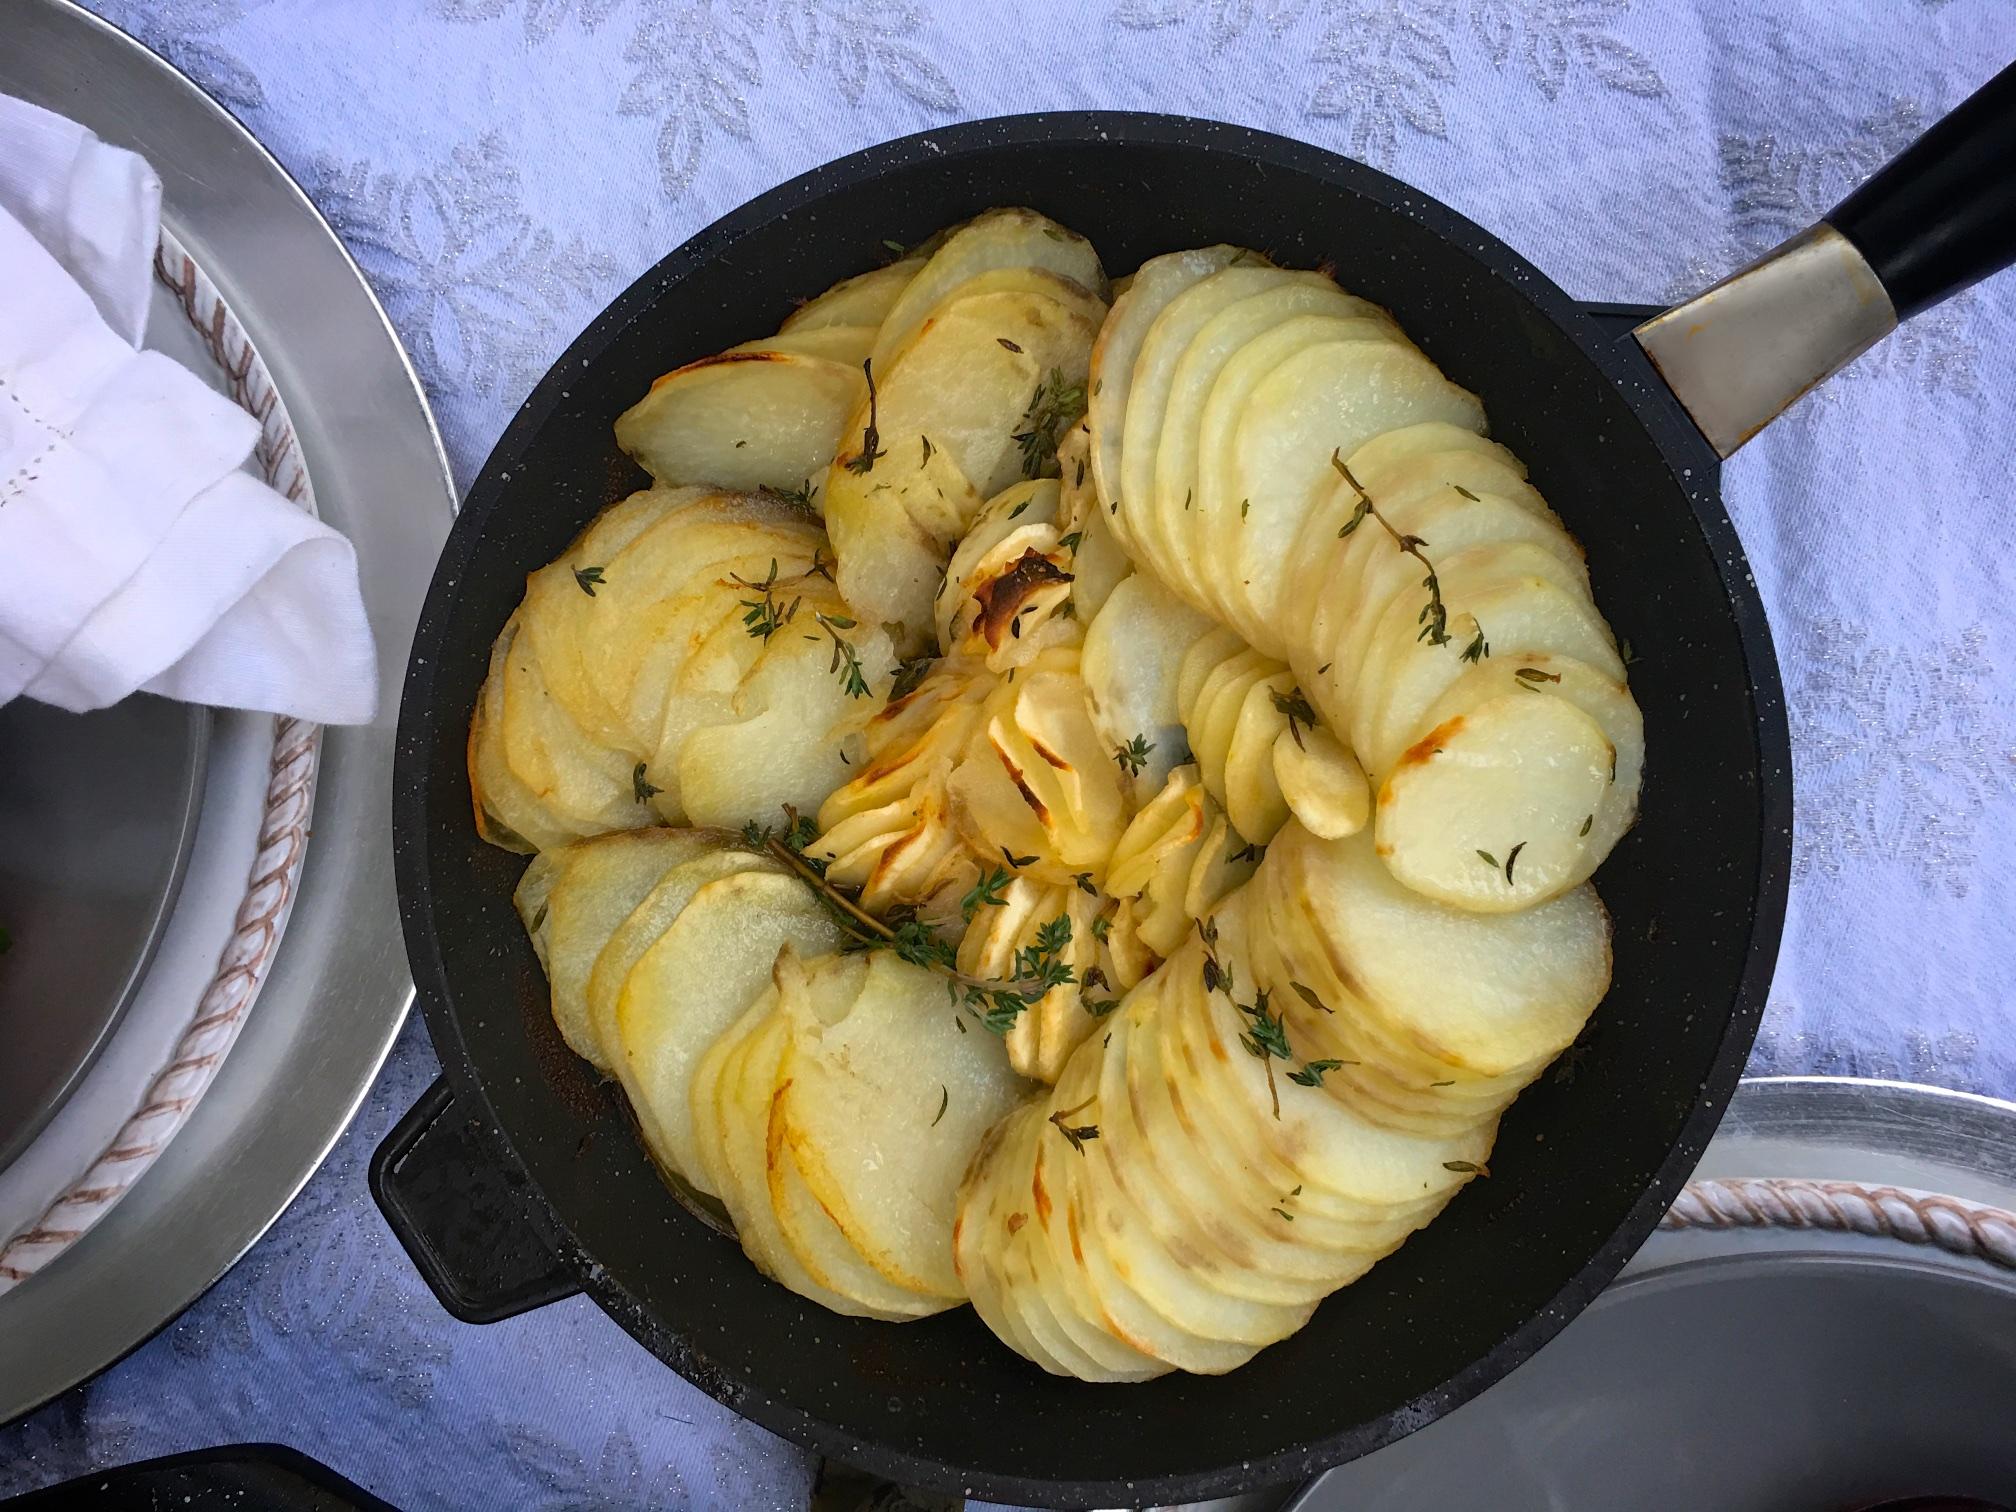 Our holiday caravan is about rich herbs, lovely spices, perfect fruits, full-flavored mushrooms. And we get started with a bit of thyme in a lovely potato dish.